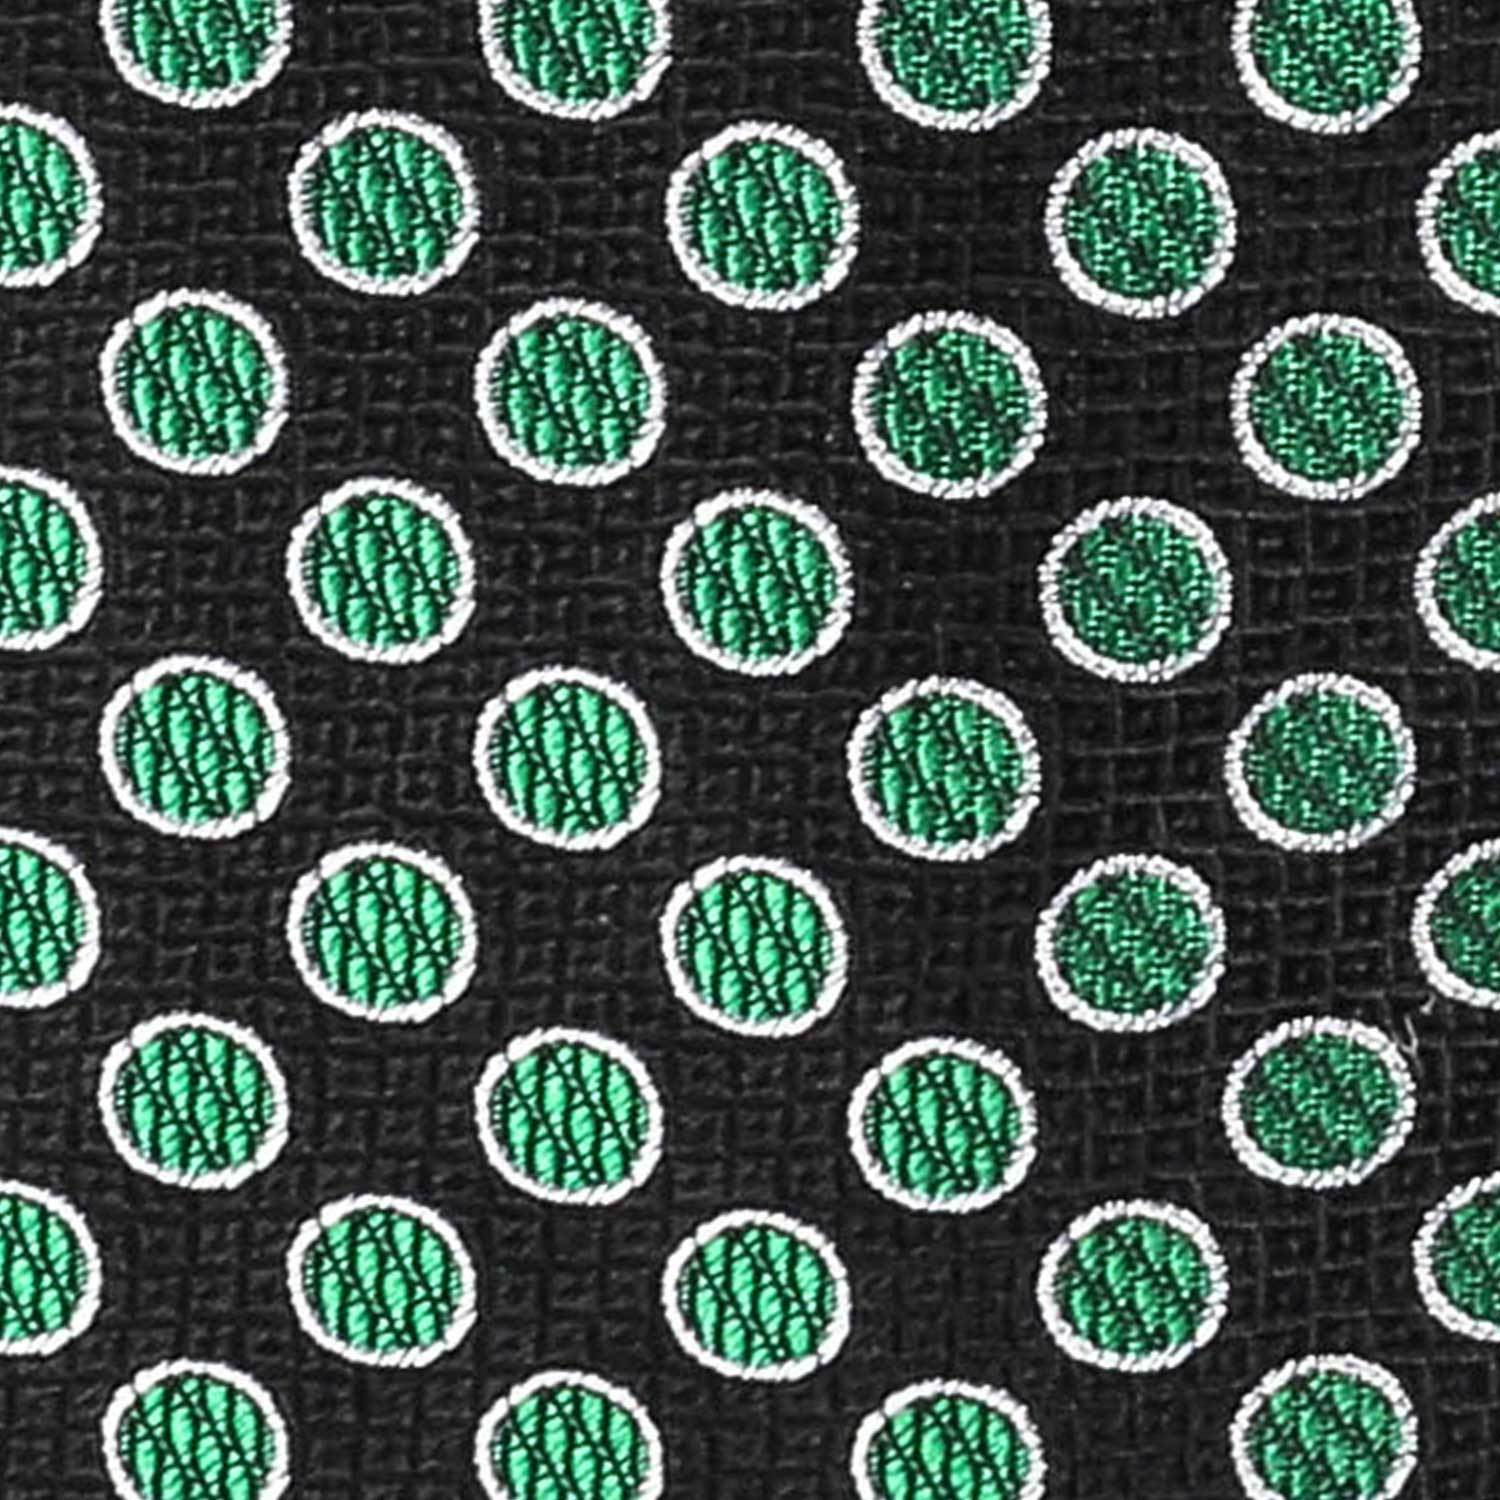 Green and Black Polka Dot Tie Neckties Adesso Accessories